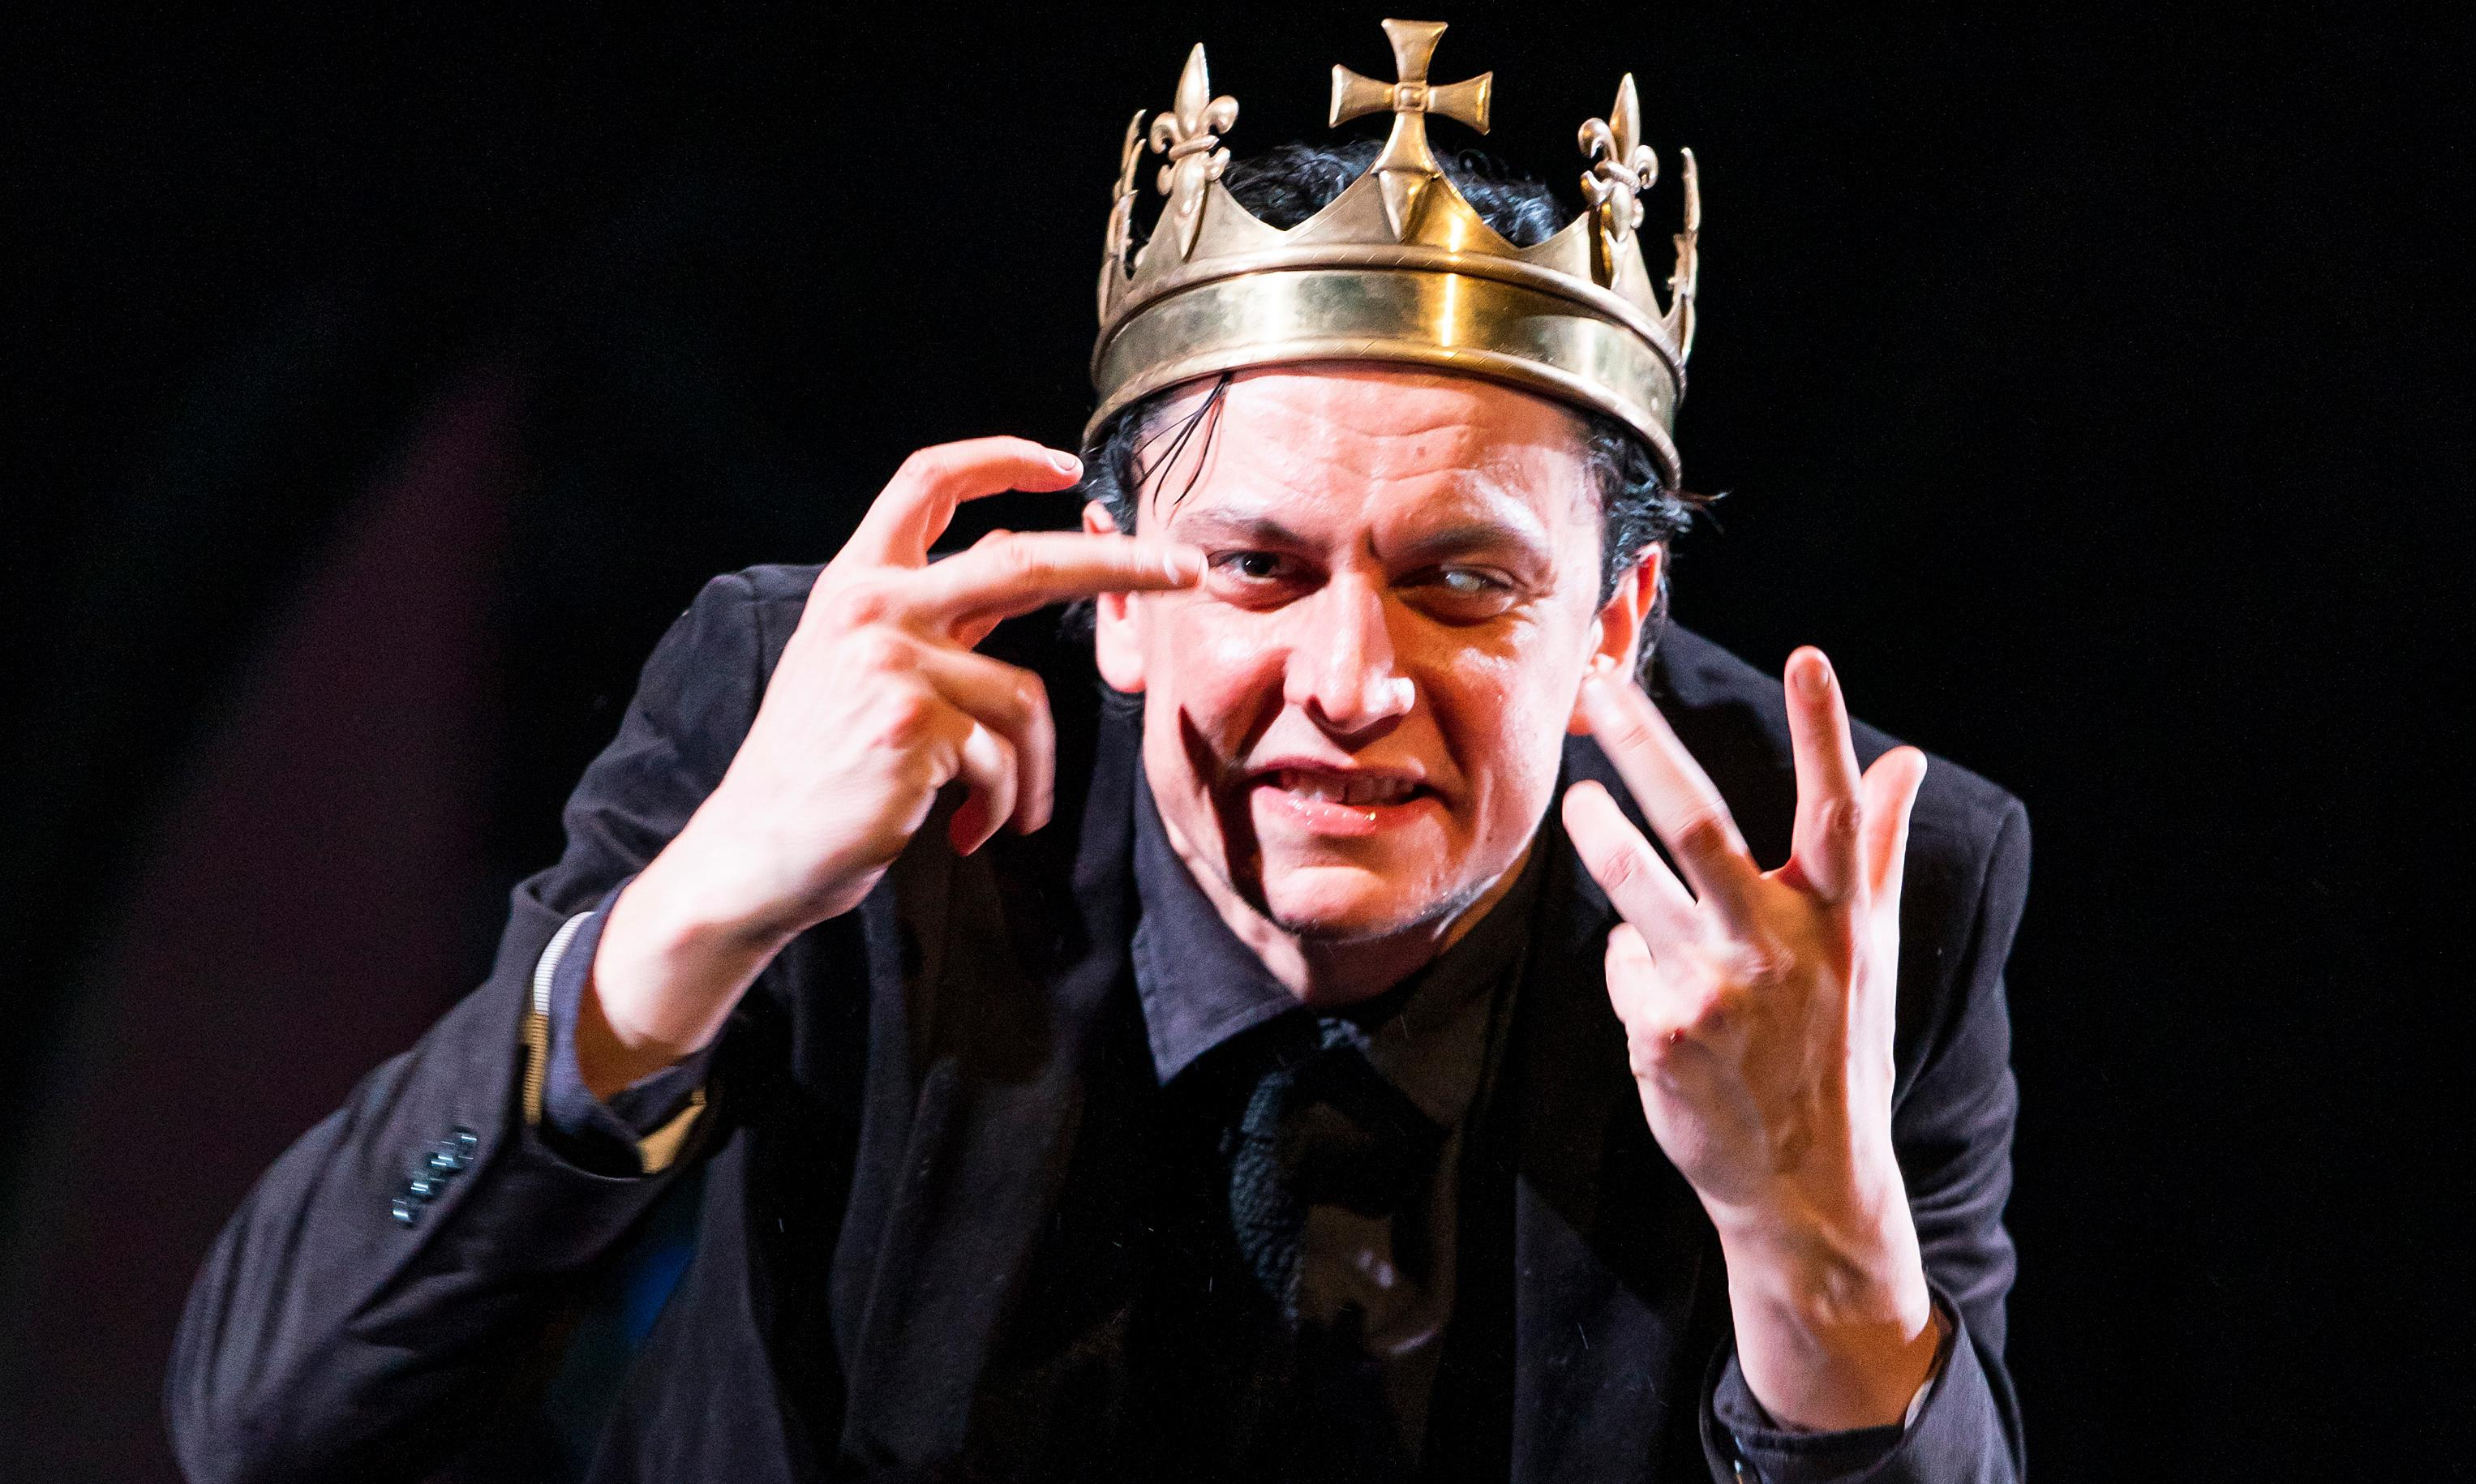 Richard III review – Tom Mothersdale hypnotises as the unhinged overlord